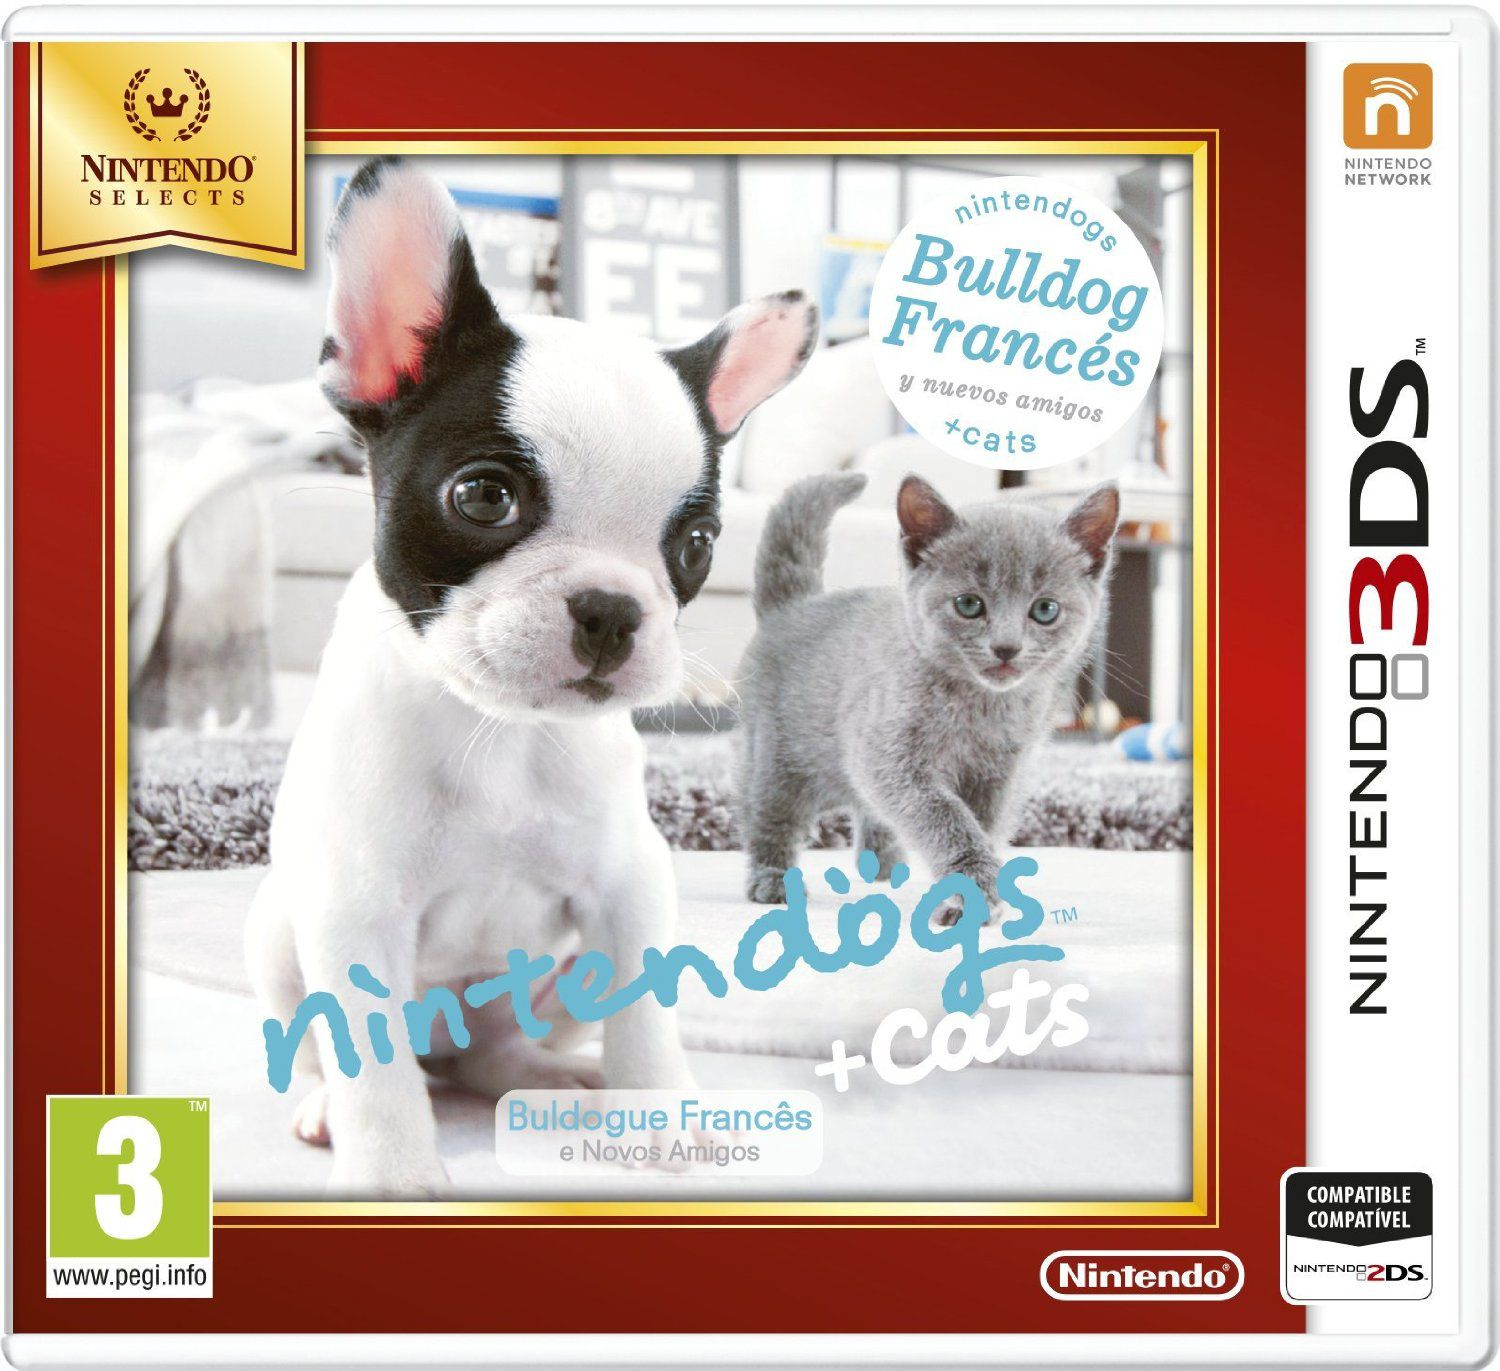 Ver Nintendogs Gatos Bulldog Selects 3Ds